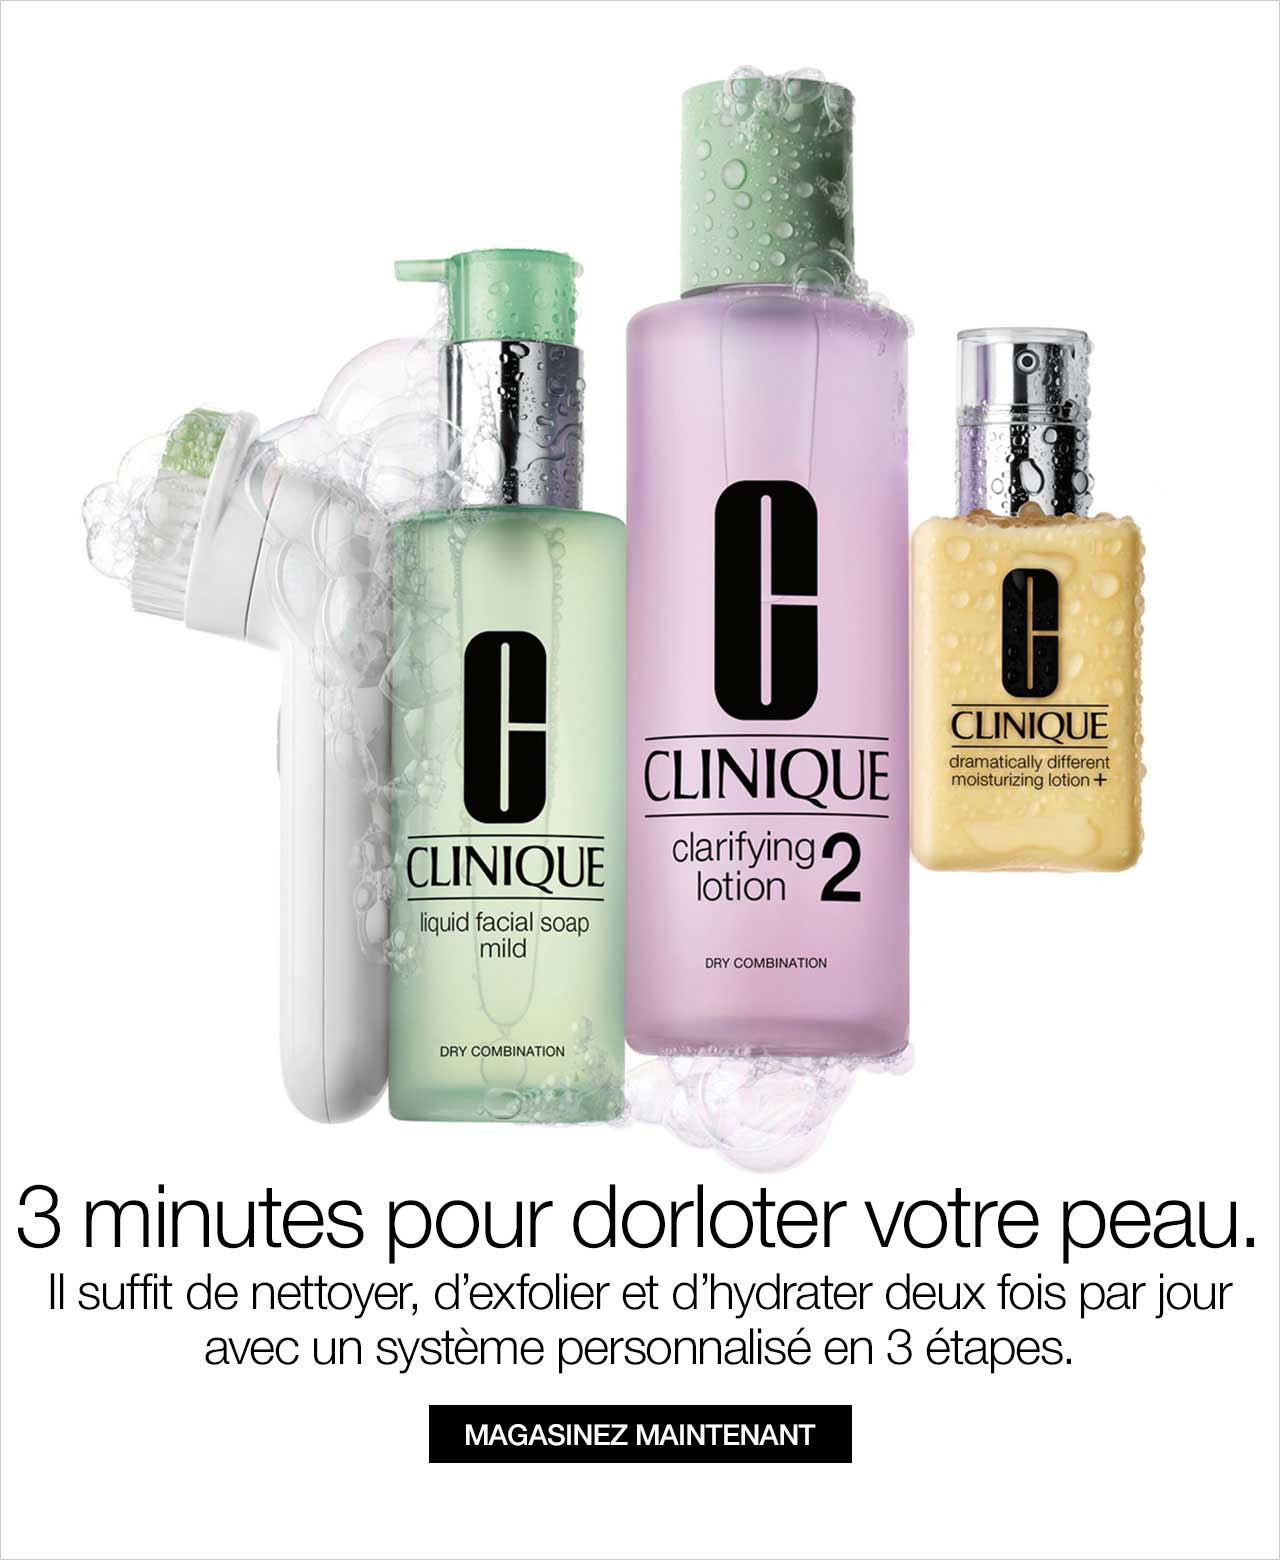 Clinique 3-step system - cleanse, exfoliate and moisturize